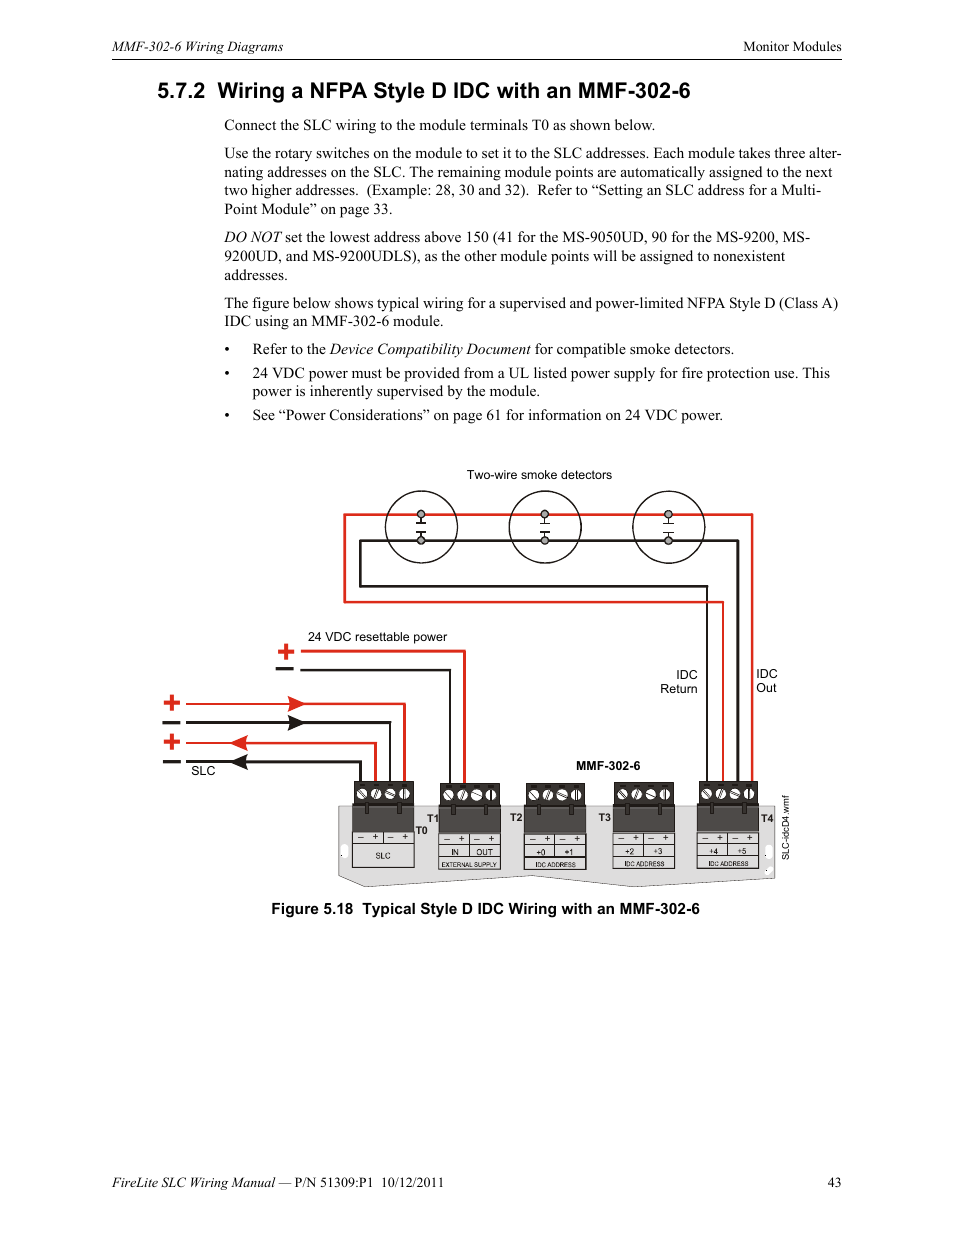 fire lite slc intelligent control panel wiring manual page43 2 wiring a nfpa style d idc with an mmf 302 6, wiring a nfpa style Fire Lite by Honeywell at n-0.co